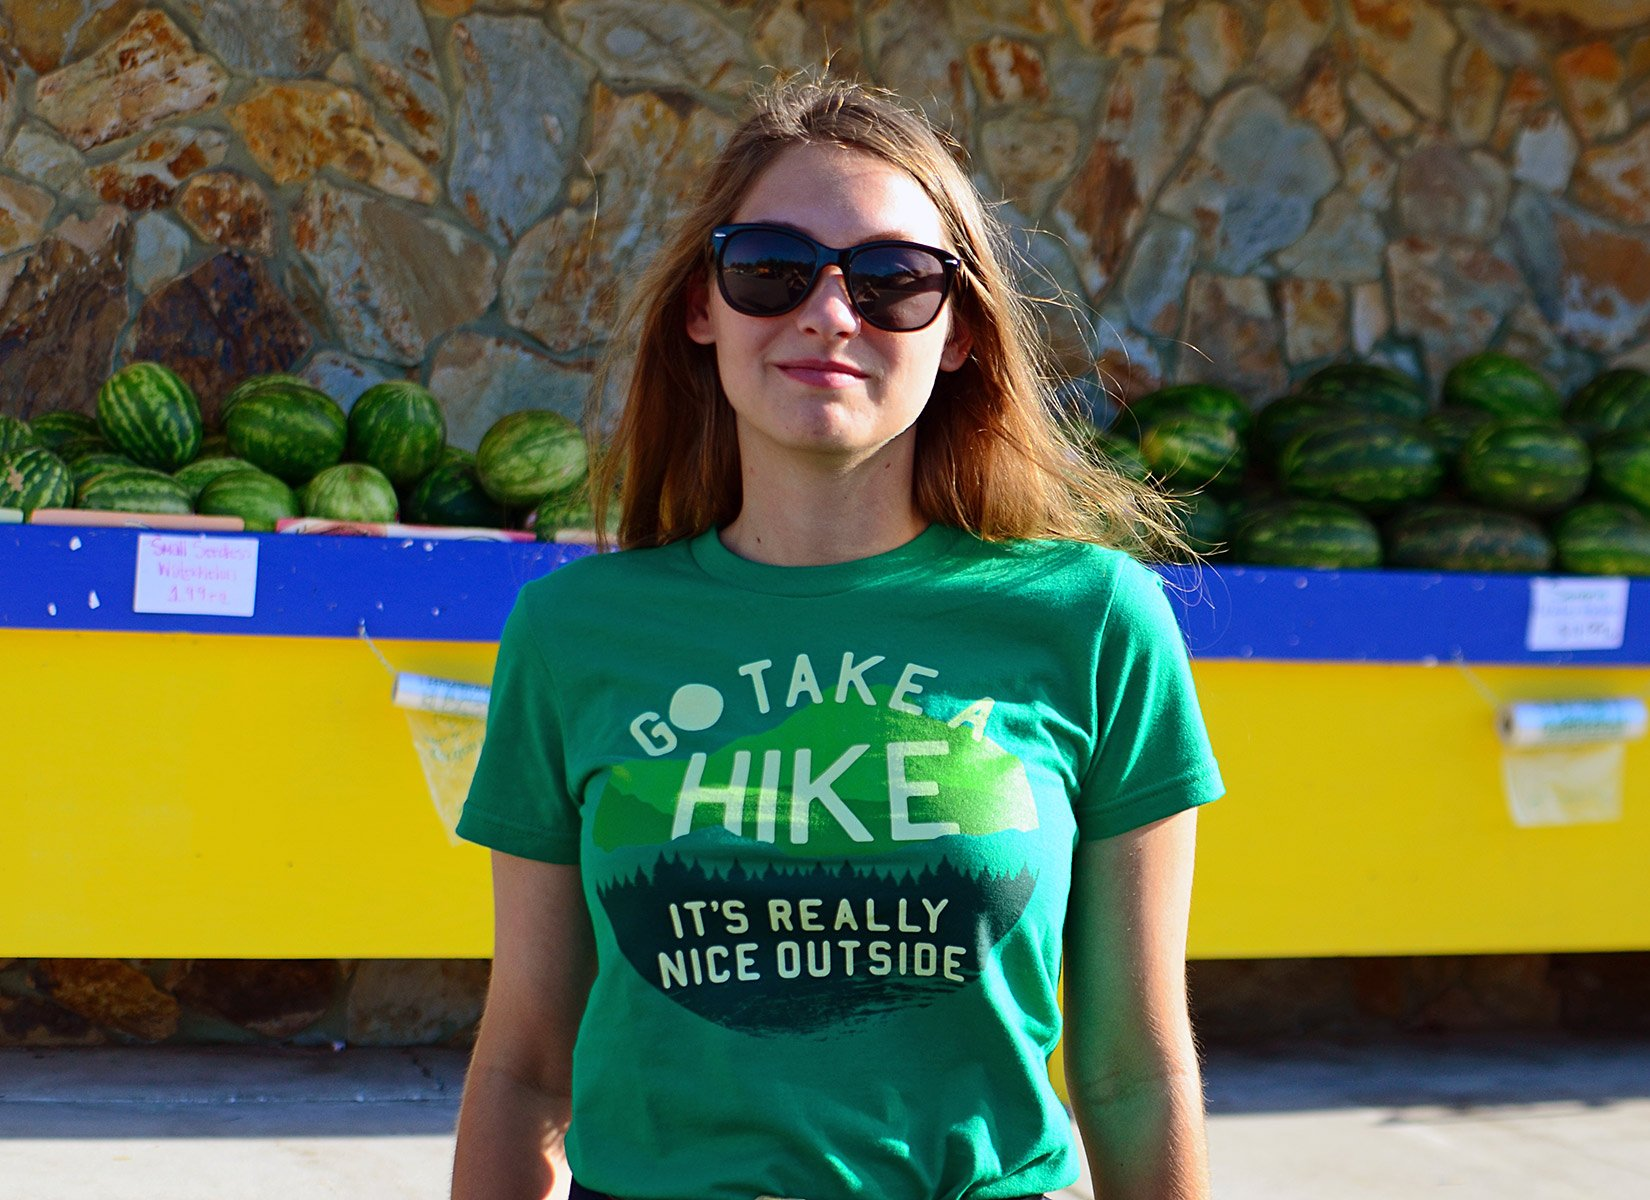 Go Take A Hike on Juniors T-Shirt